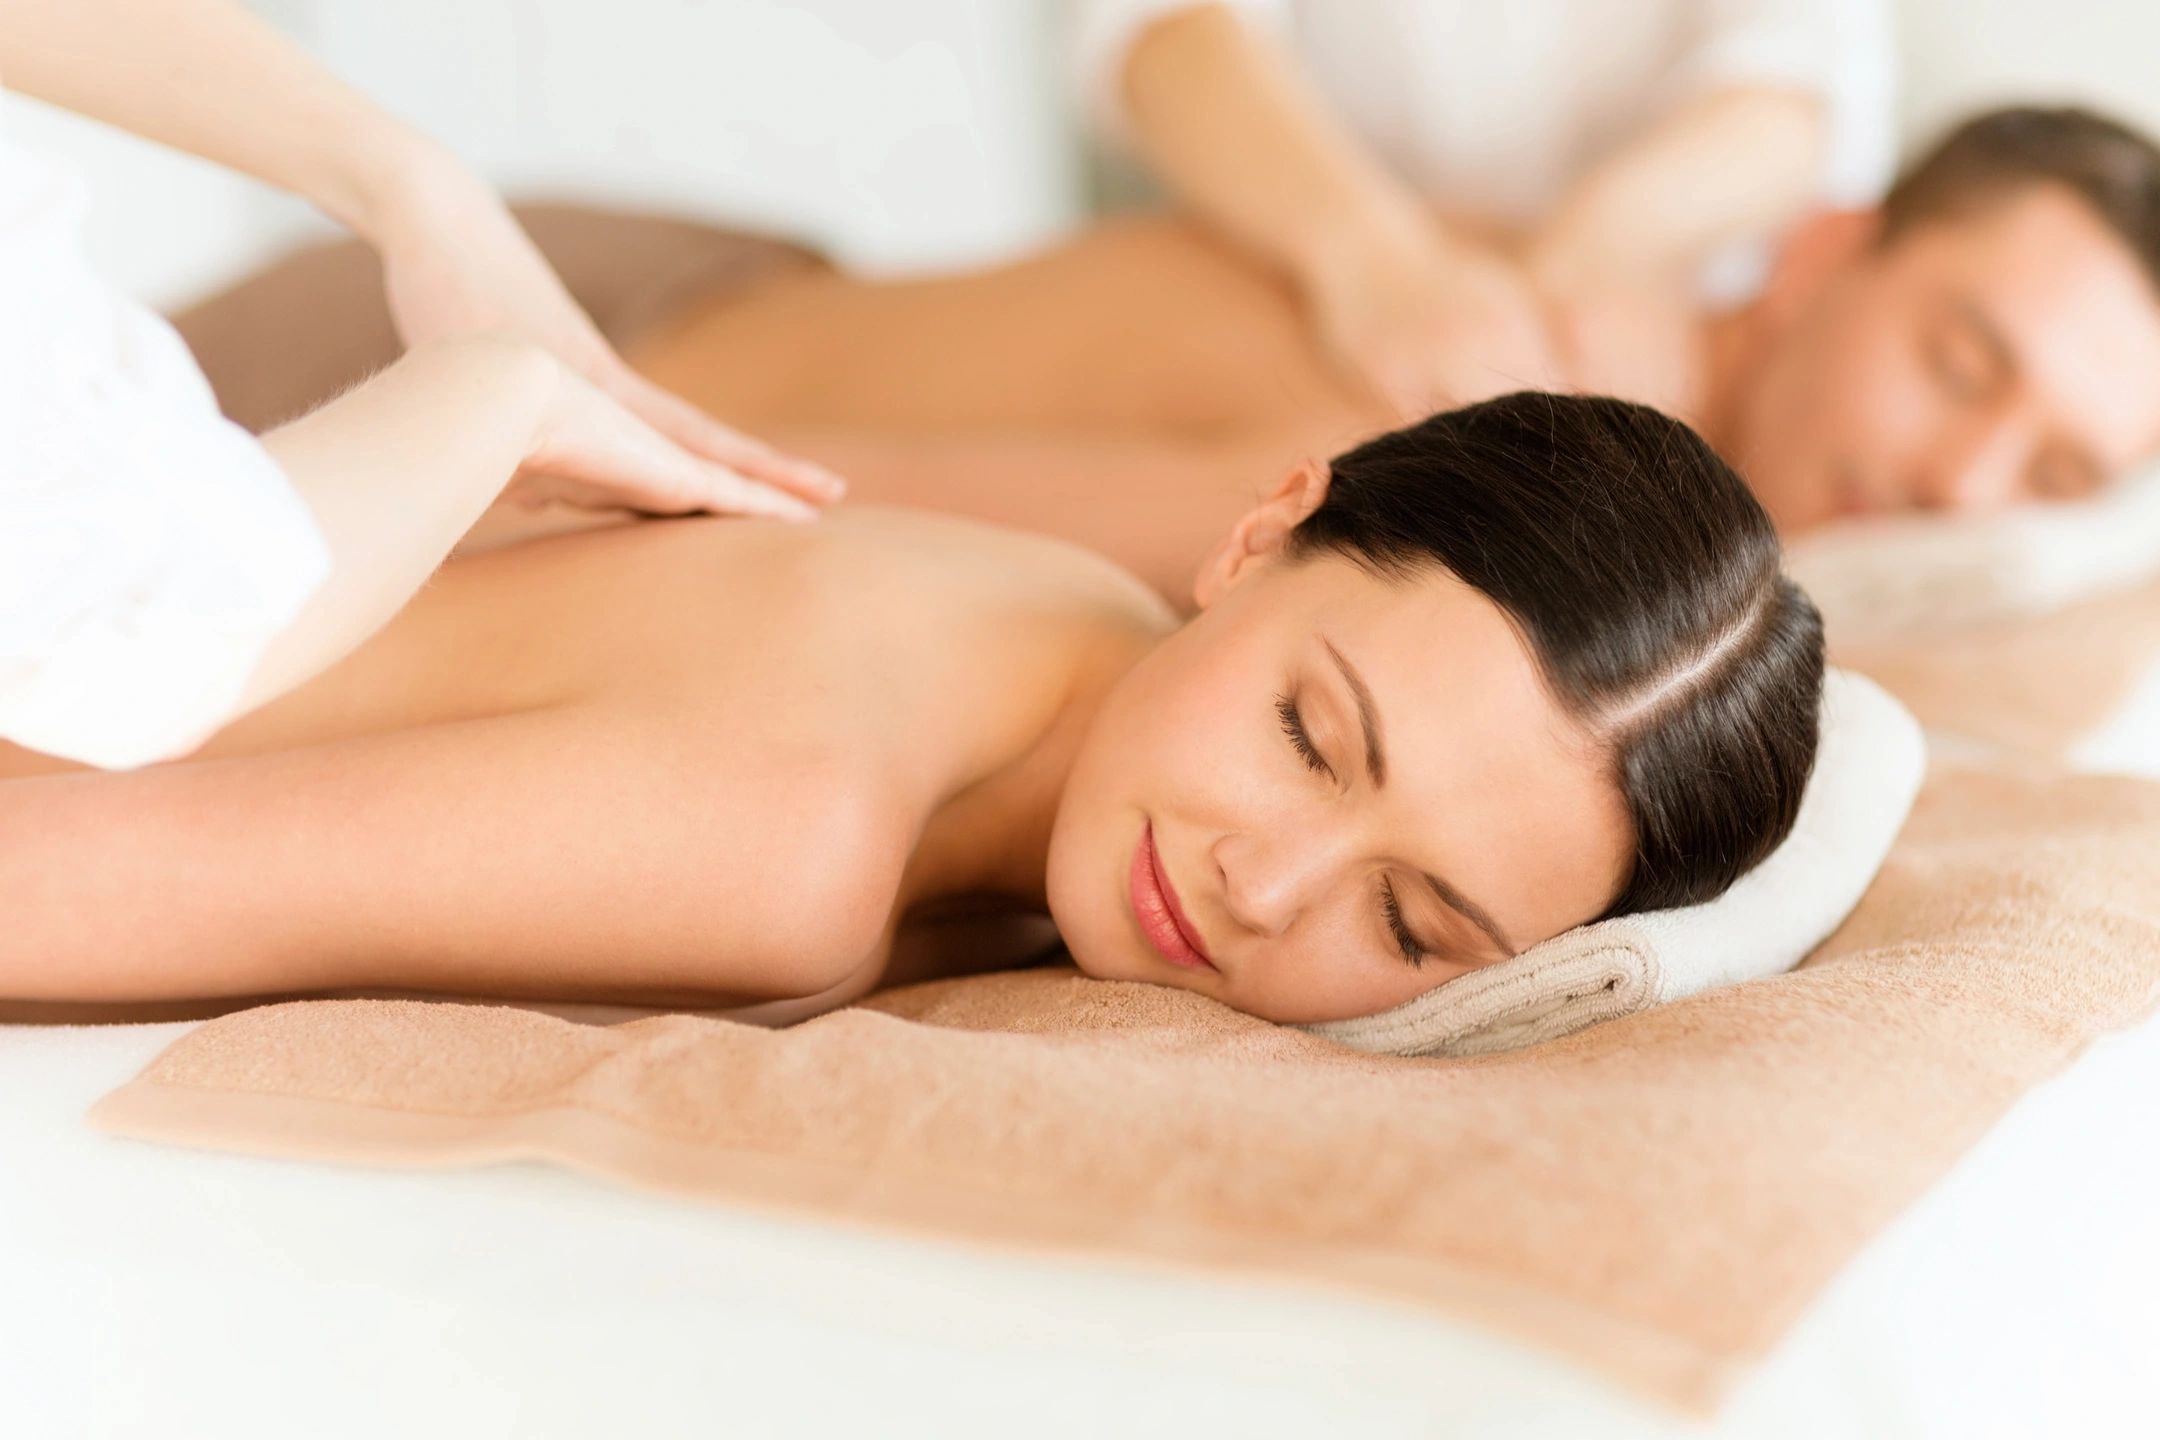 A couple receiving massages at a massage school